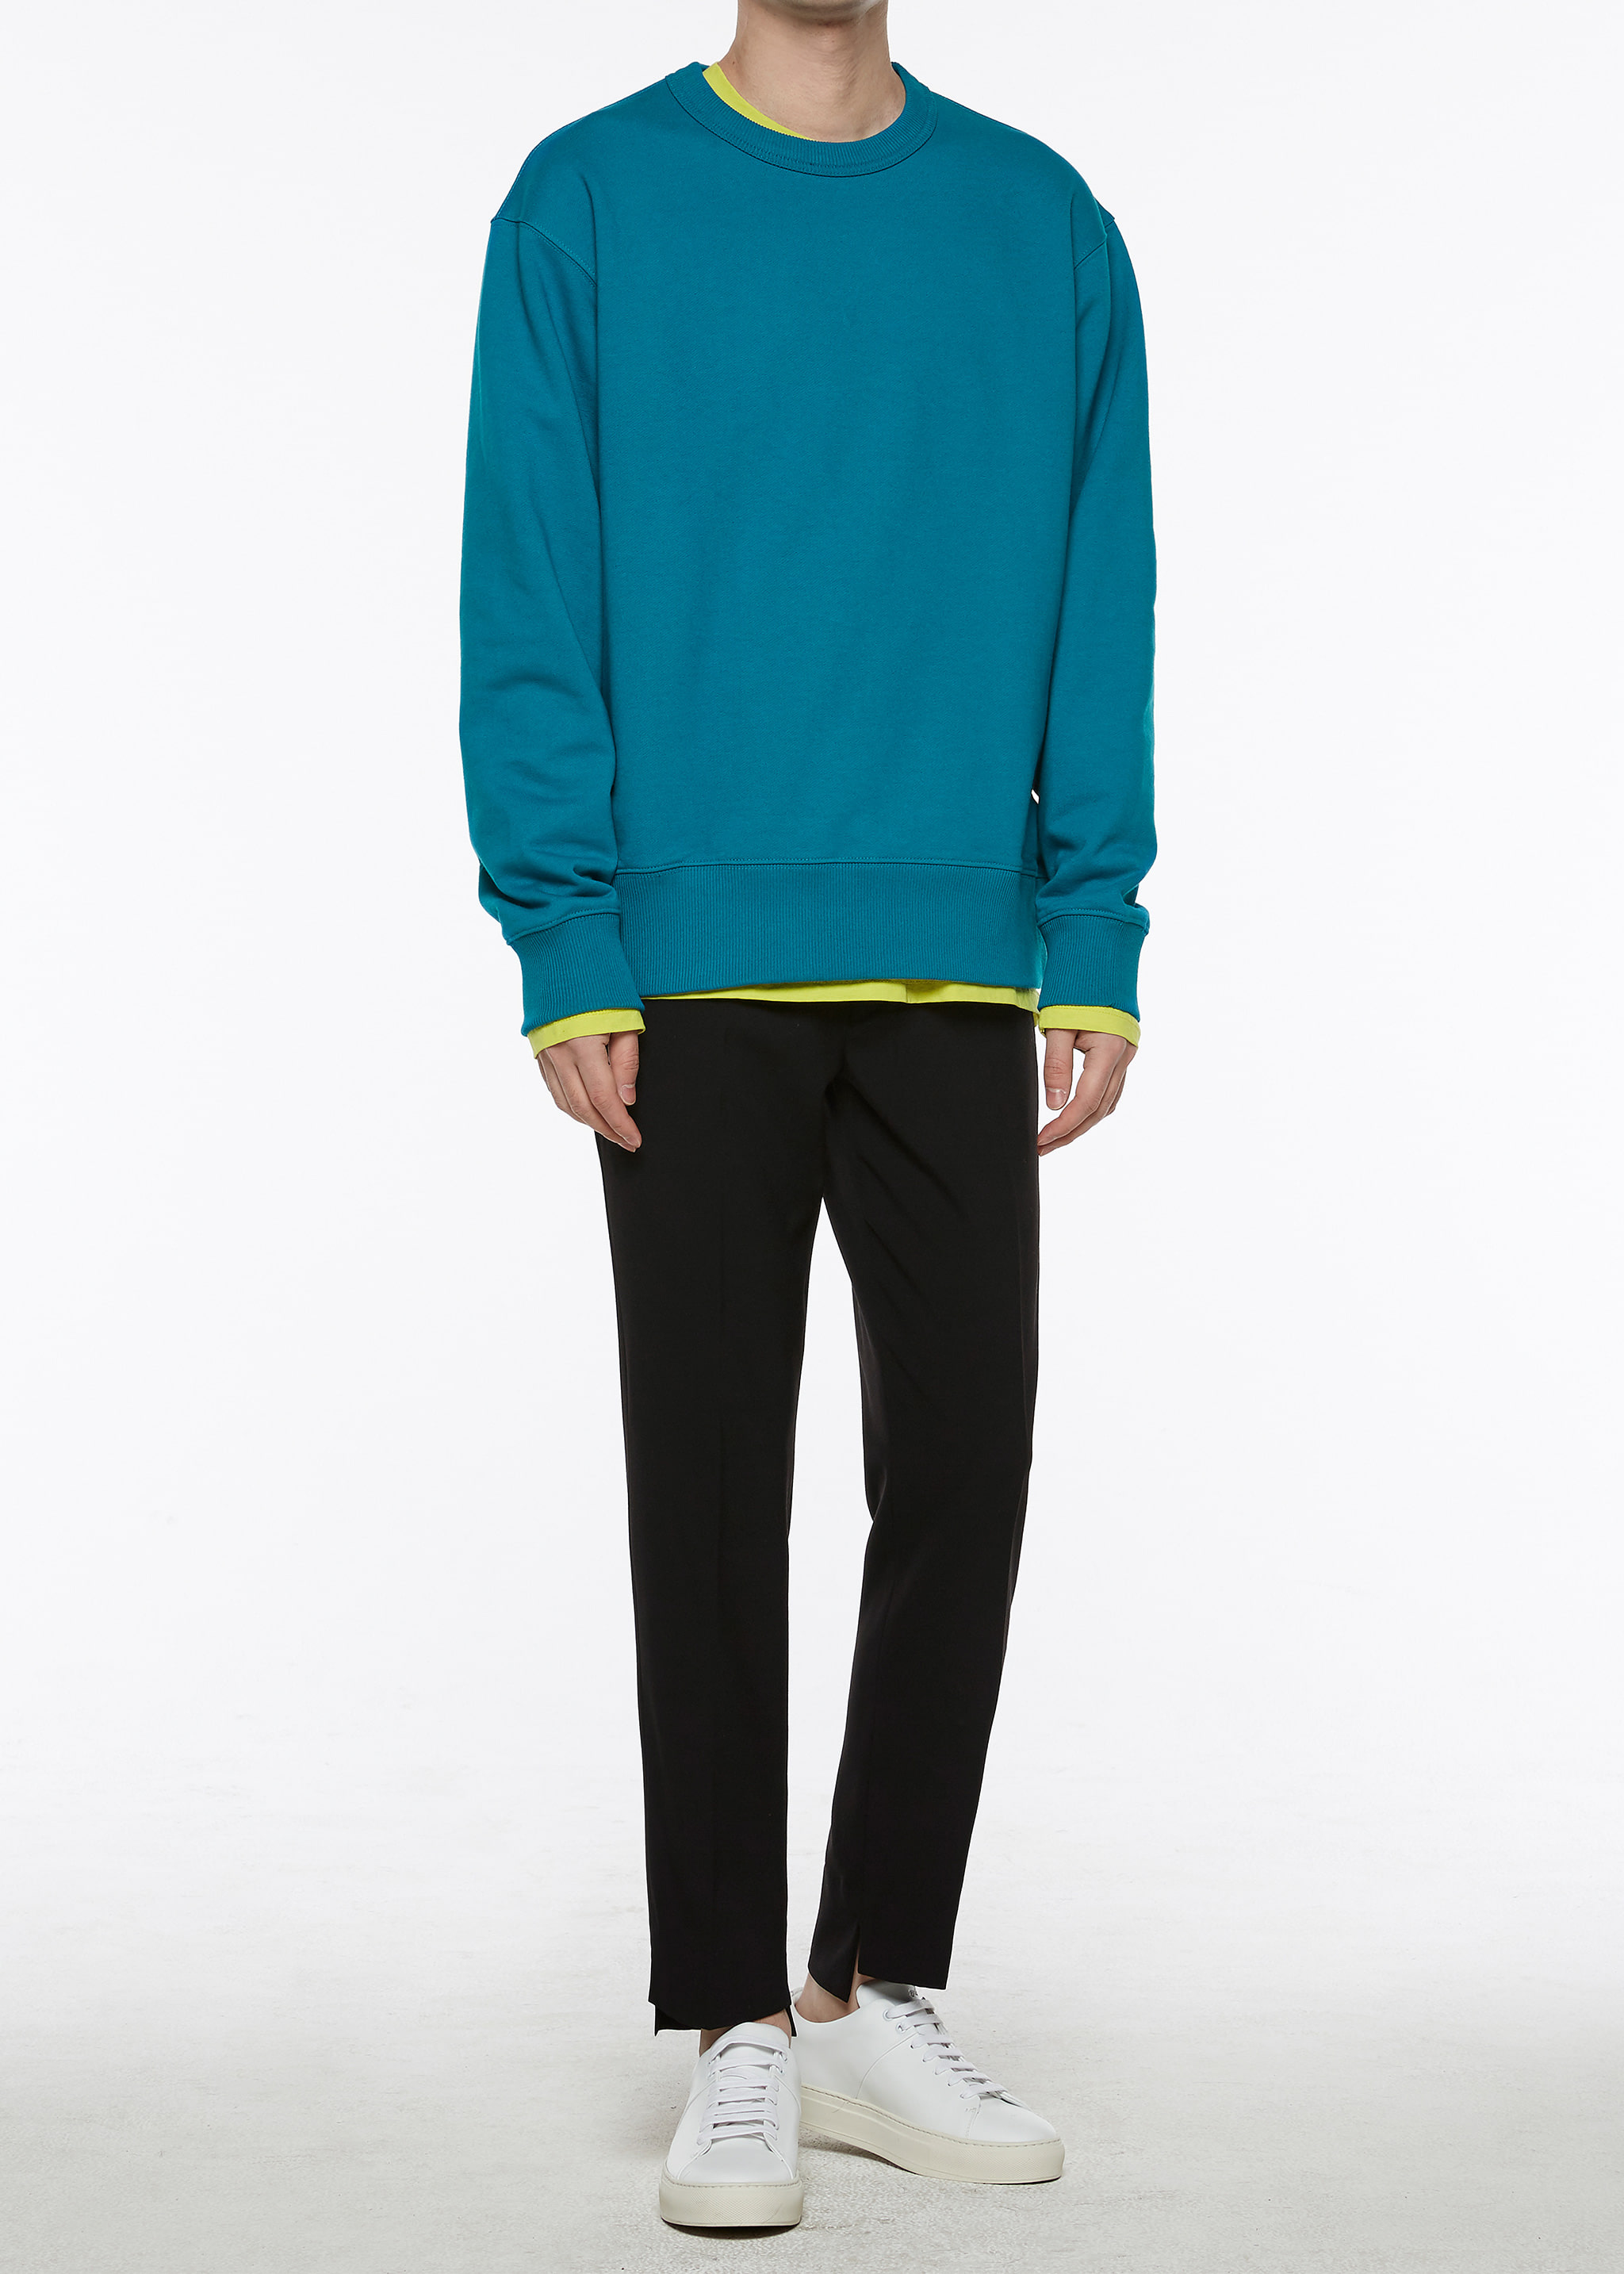 Errday Sweatshirt (Teal Blue)